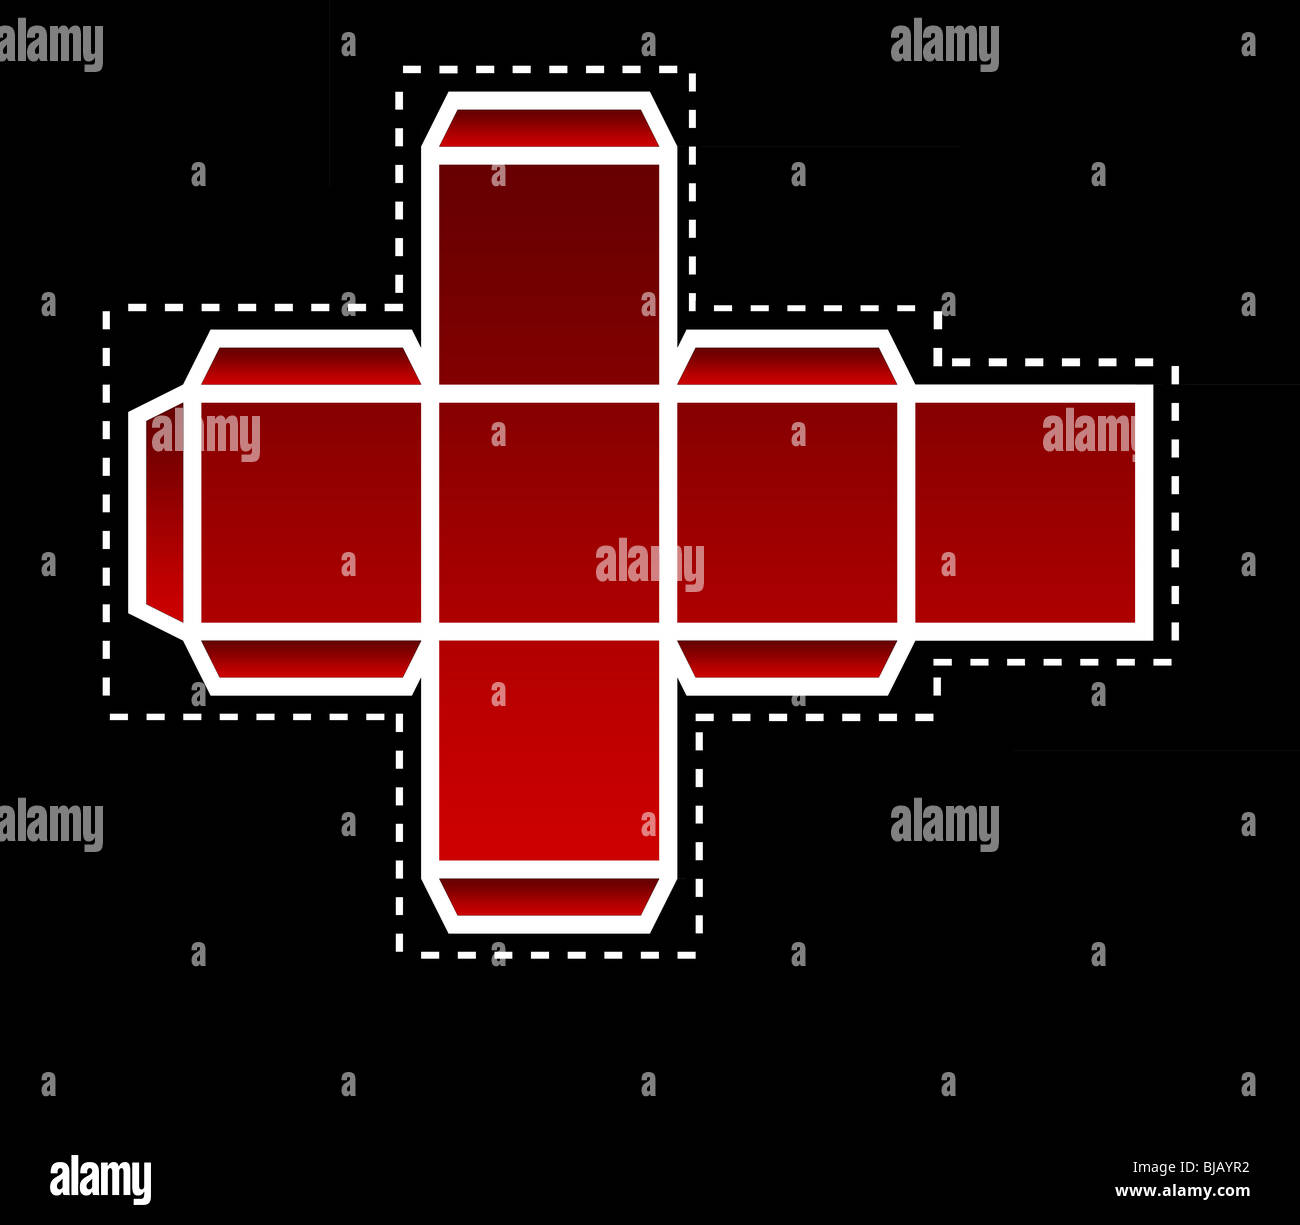 Folding template for red dice in two dimensions, isolated on black background. - Stock Image